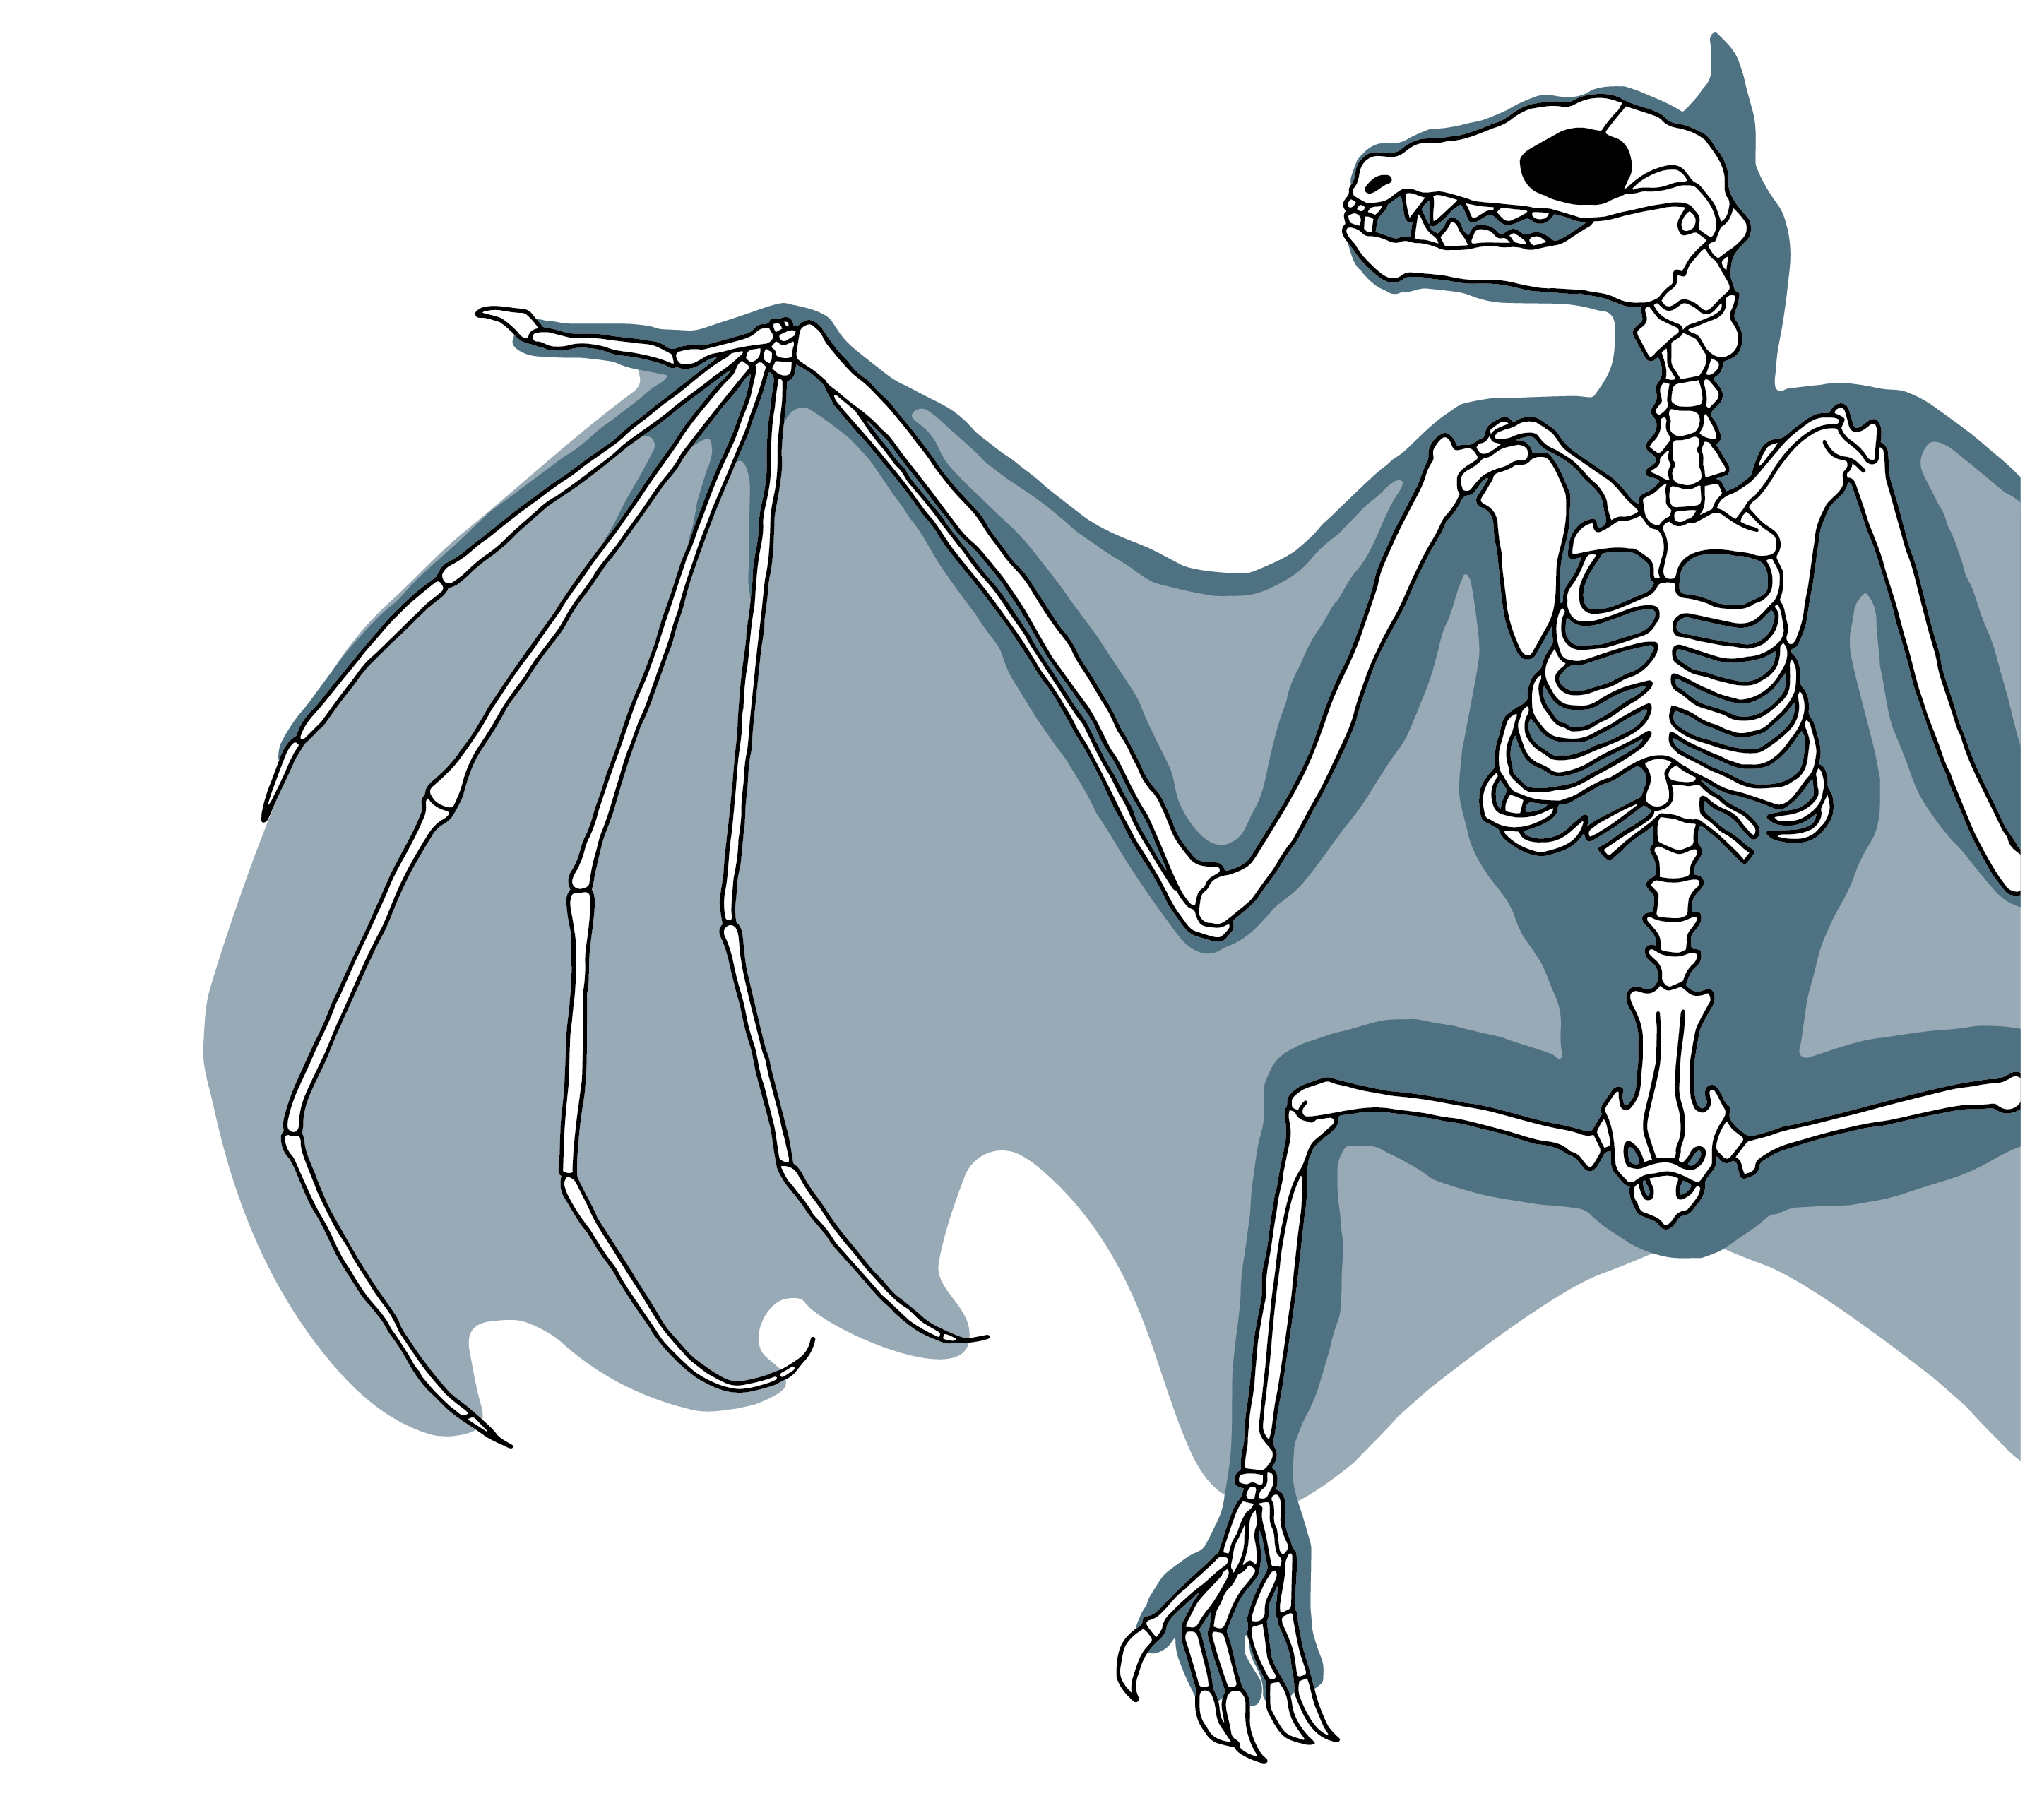 Bat Skeleton Diagram